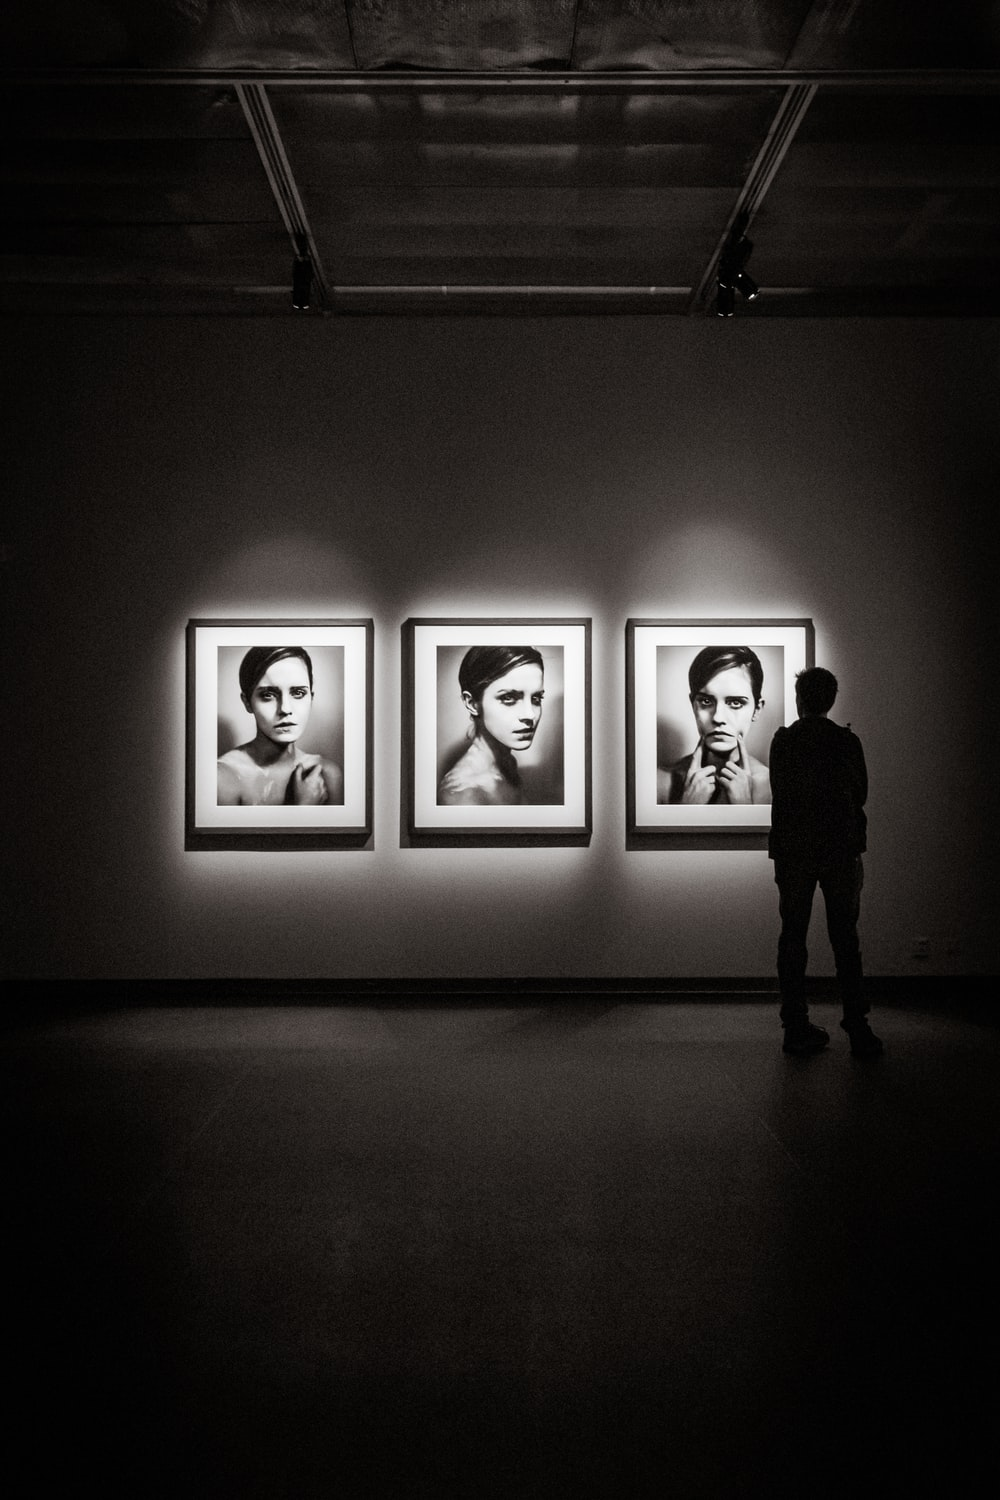 man looking at portraits